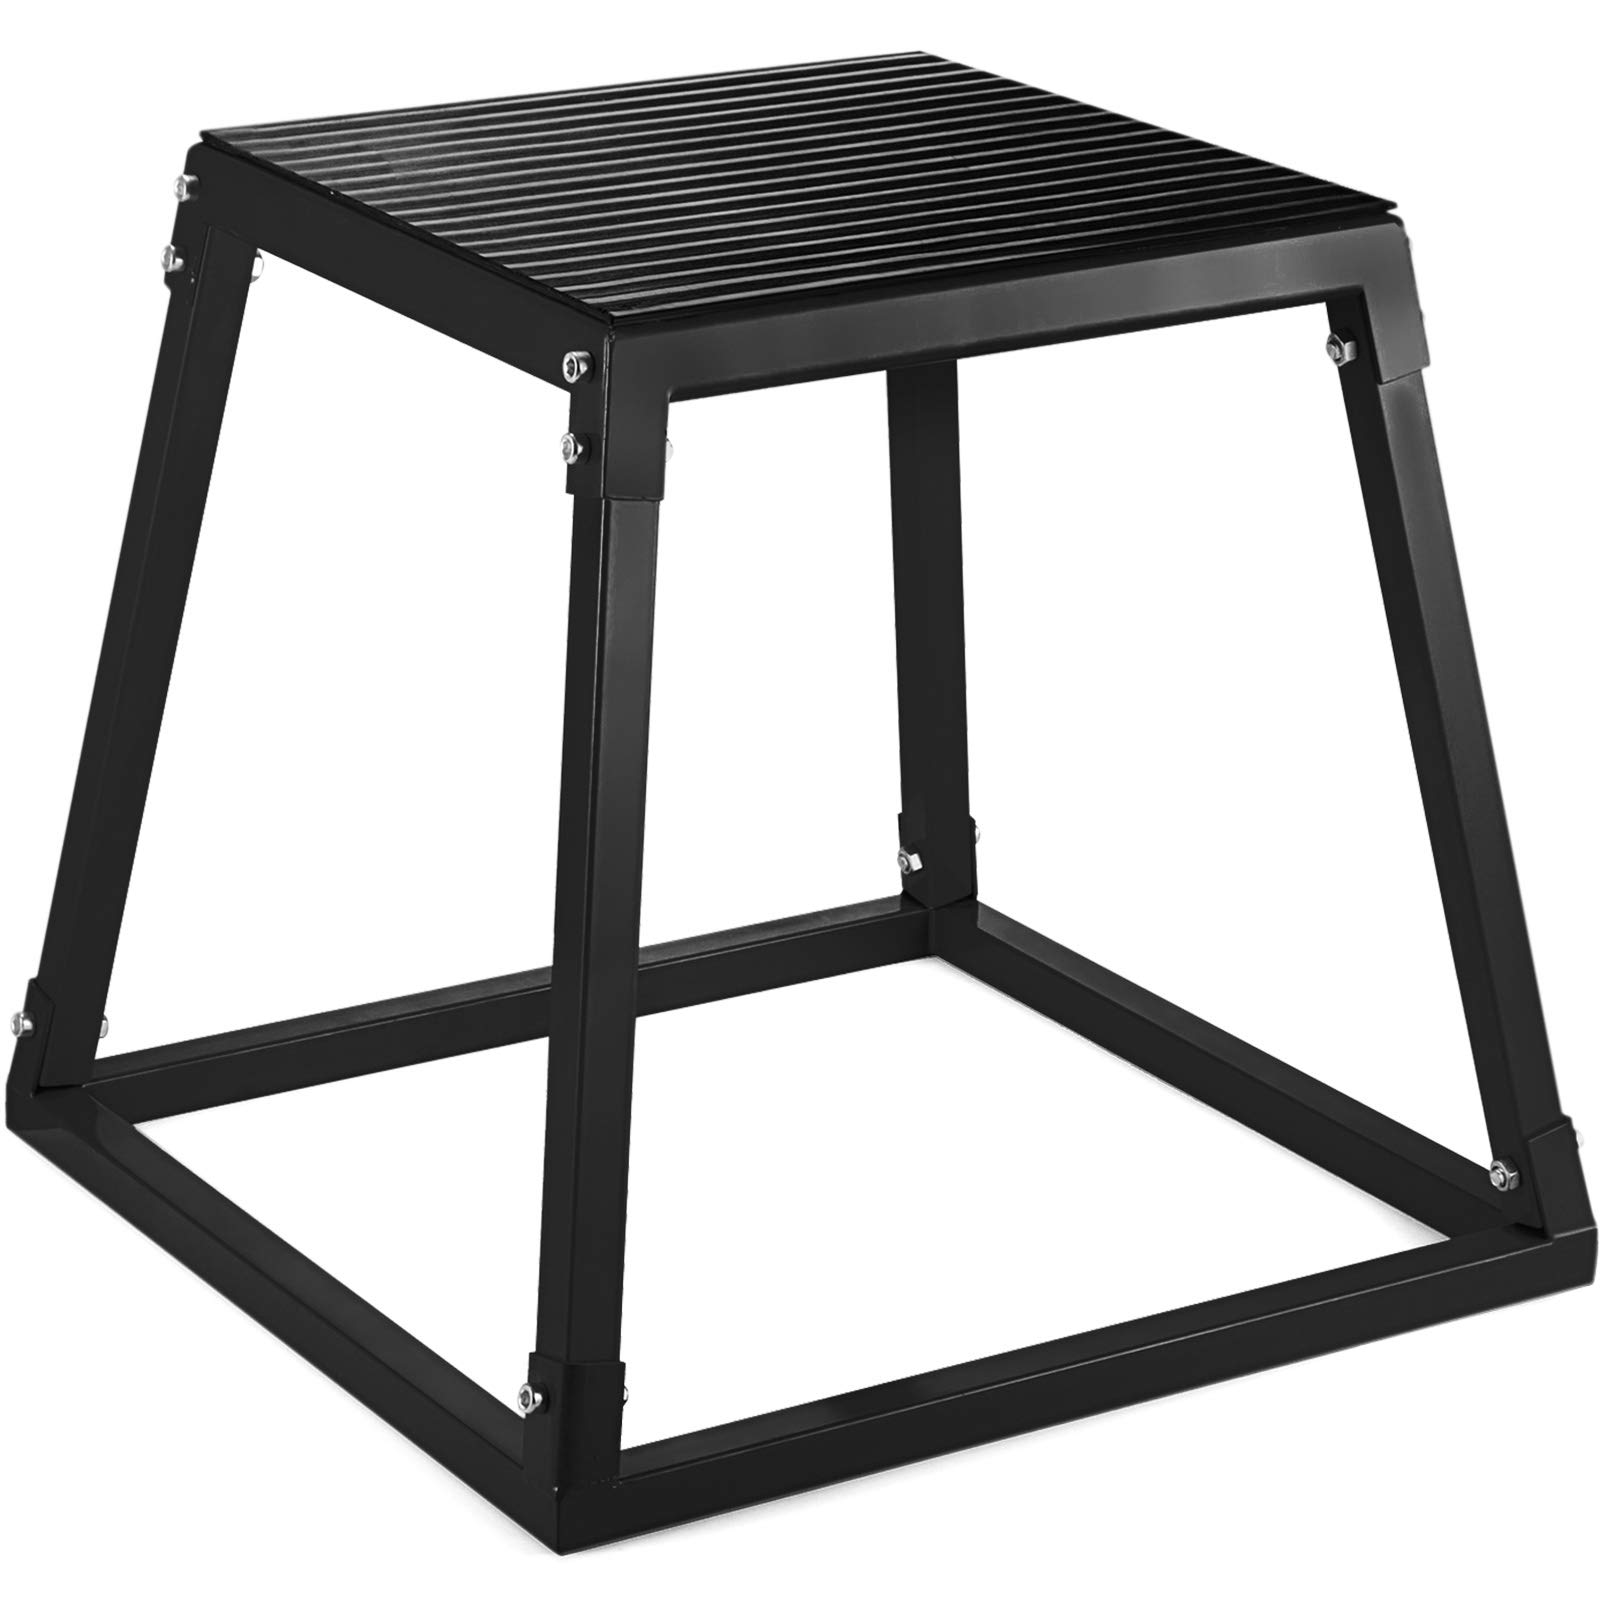 VEVOR Plyometric Box Height of 18'' Jumping Box for Crossfit, Jump Exercise (18'',Black)